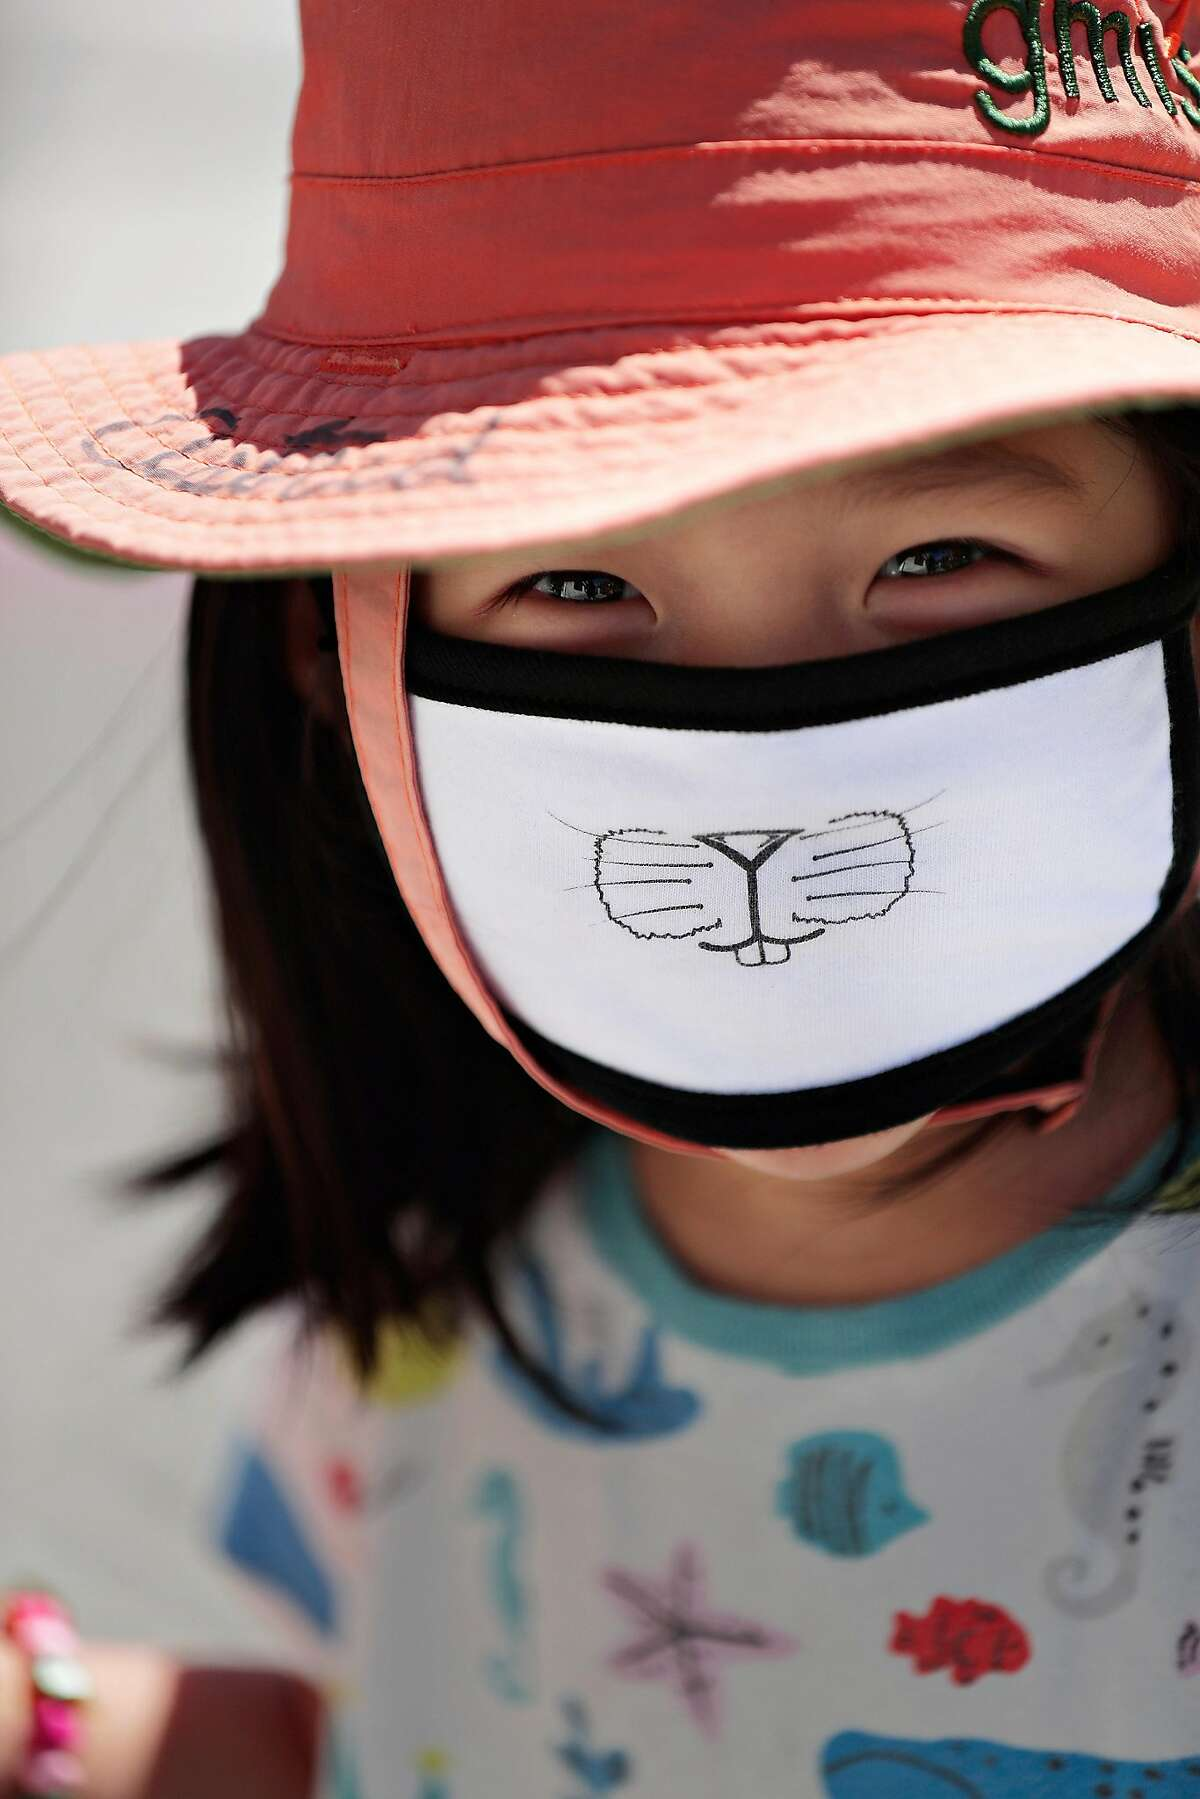 Astrid Chen smiles as she wears a mask with her mom in Monclair Village in Oakland, Calif., on Tuesday, June 30, 2020. As more positive test results show a spike in the coronavirus infections, people wanting to get outside are wearing masks to prevent the spread of the disease.